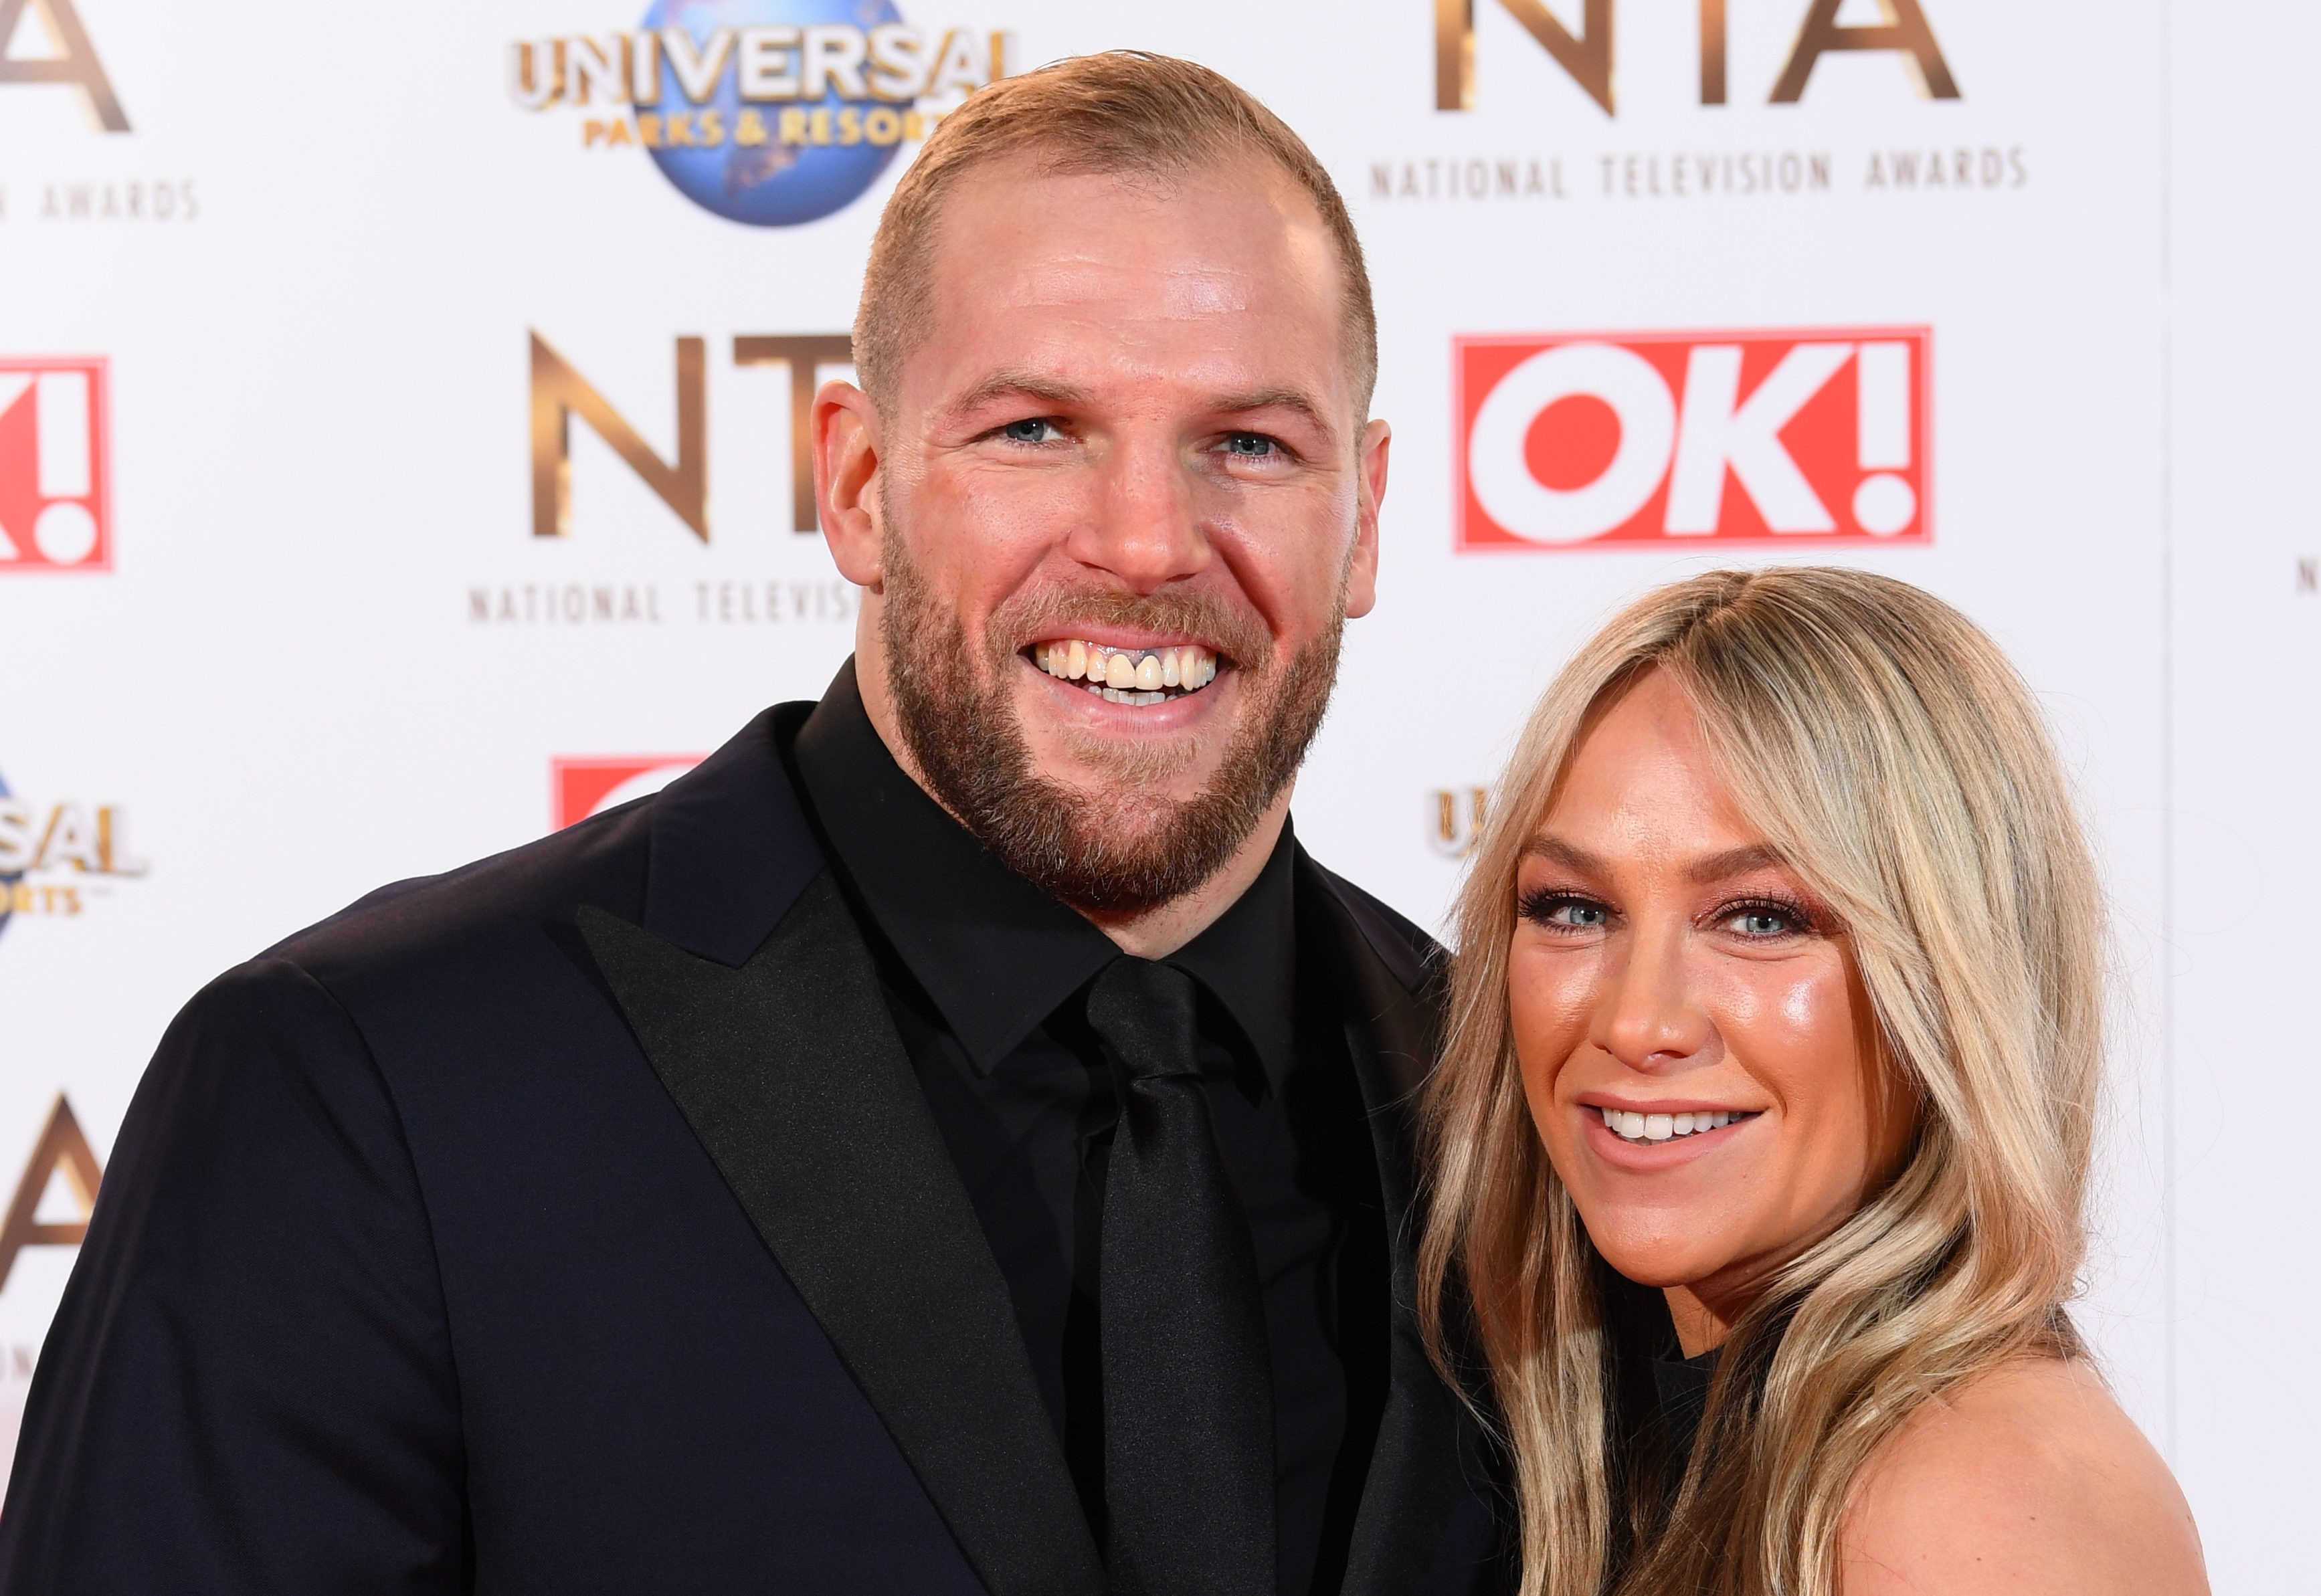 Chloe Madeley 'cringes a bit' sharing details of sex life with James Haskell but insists 'there's nothing wrong with talking about it'